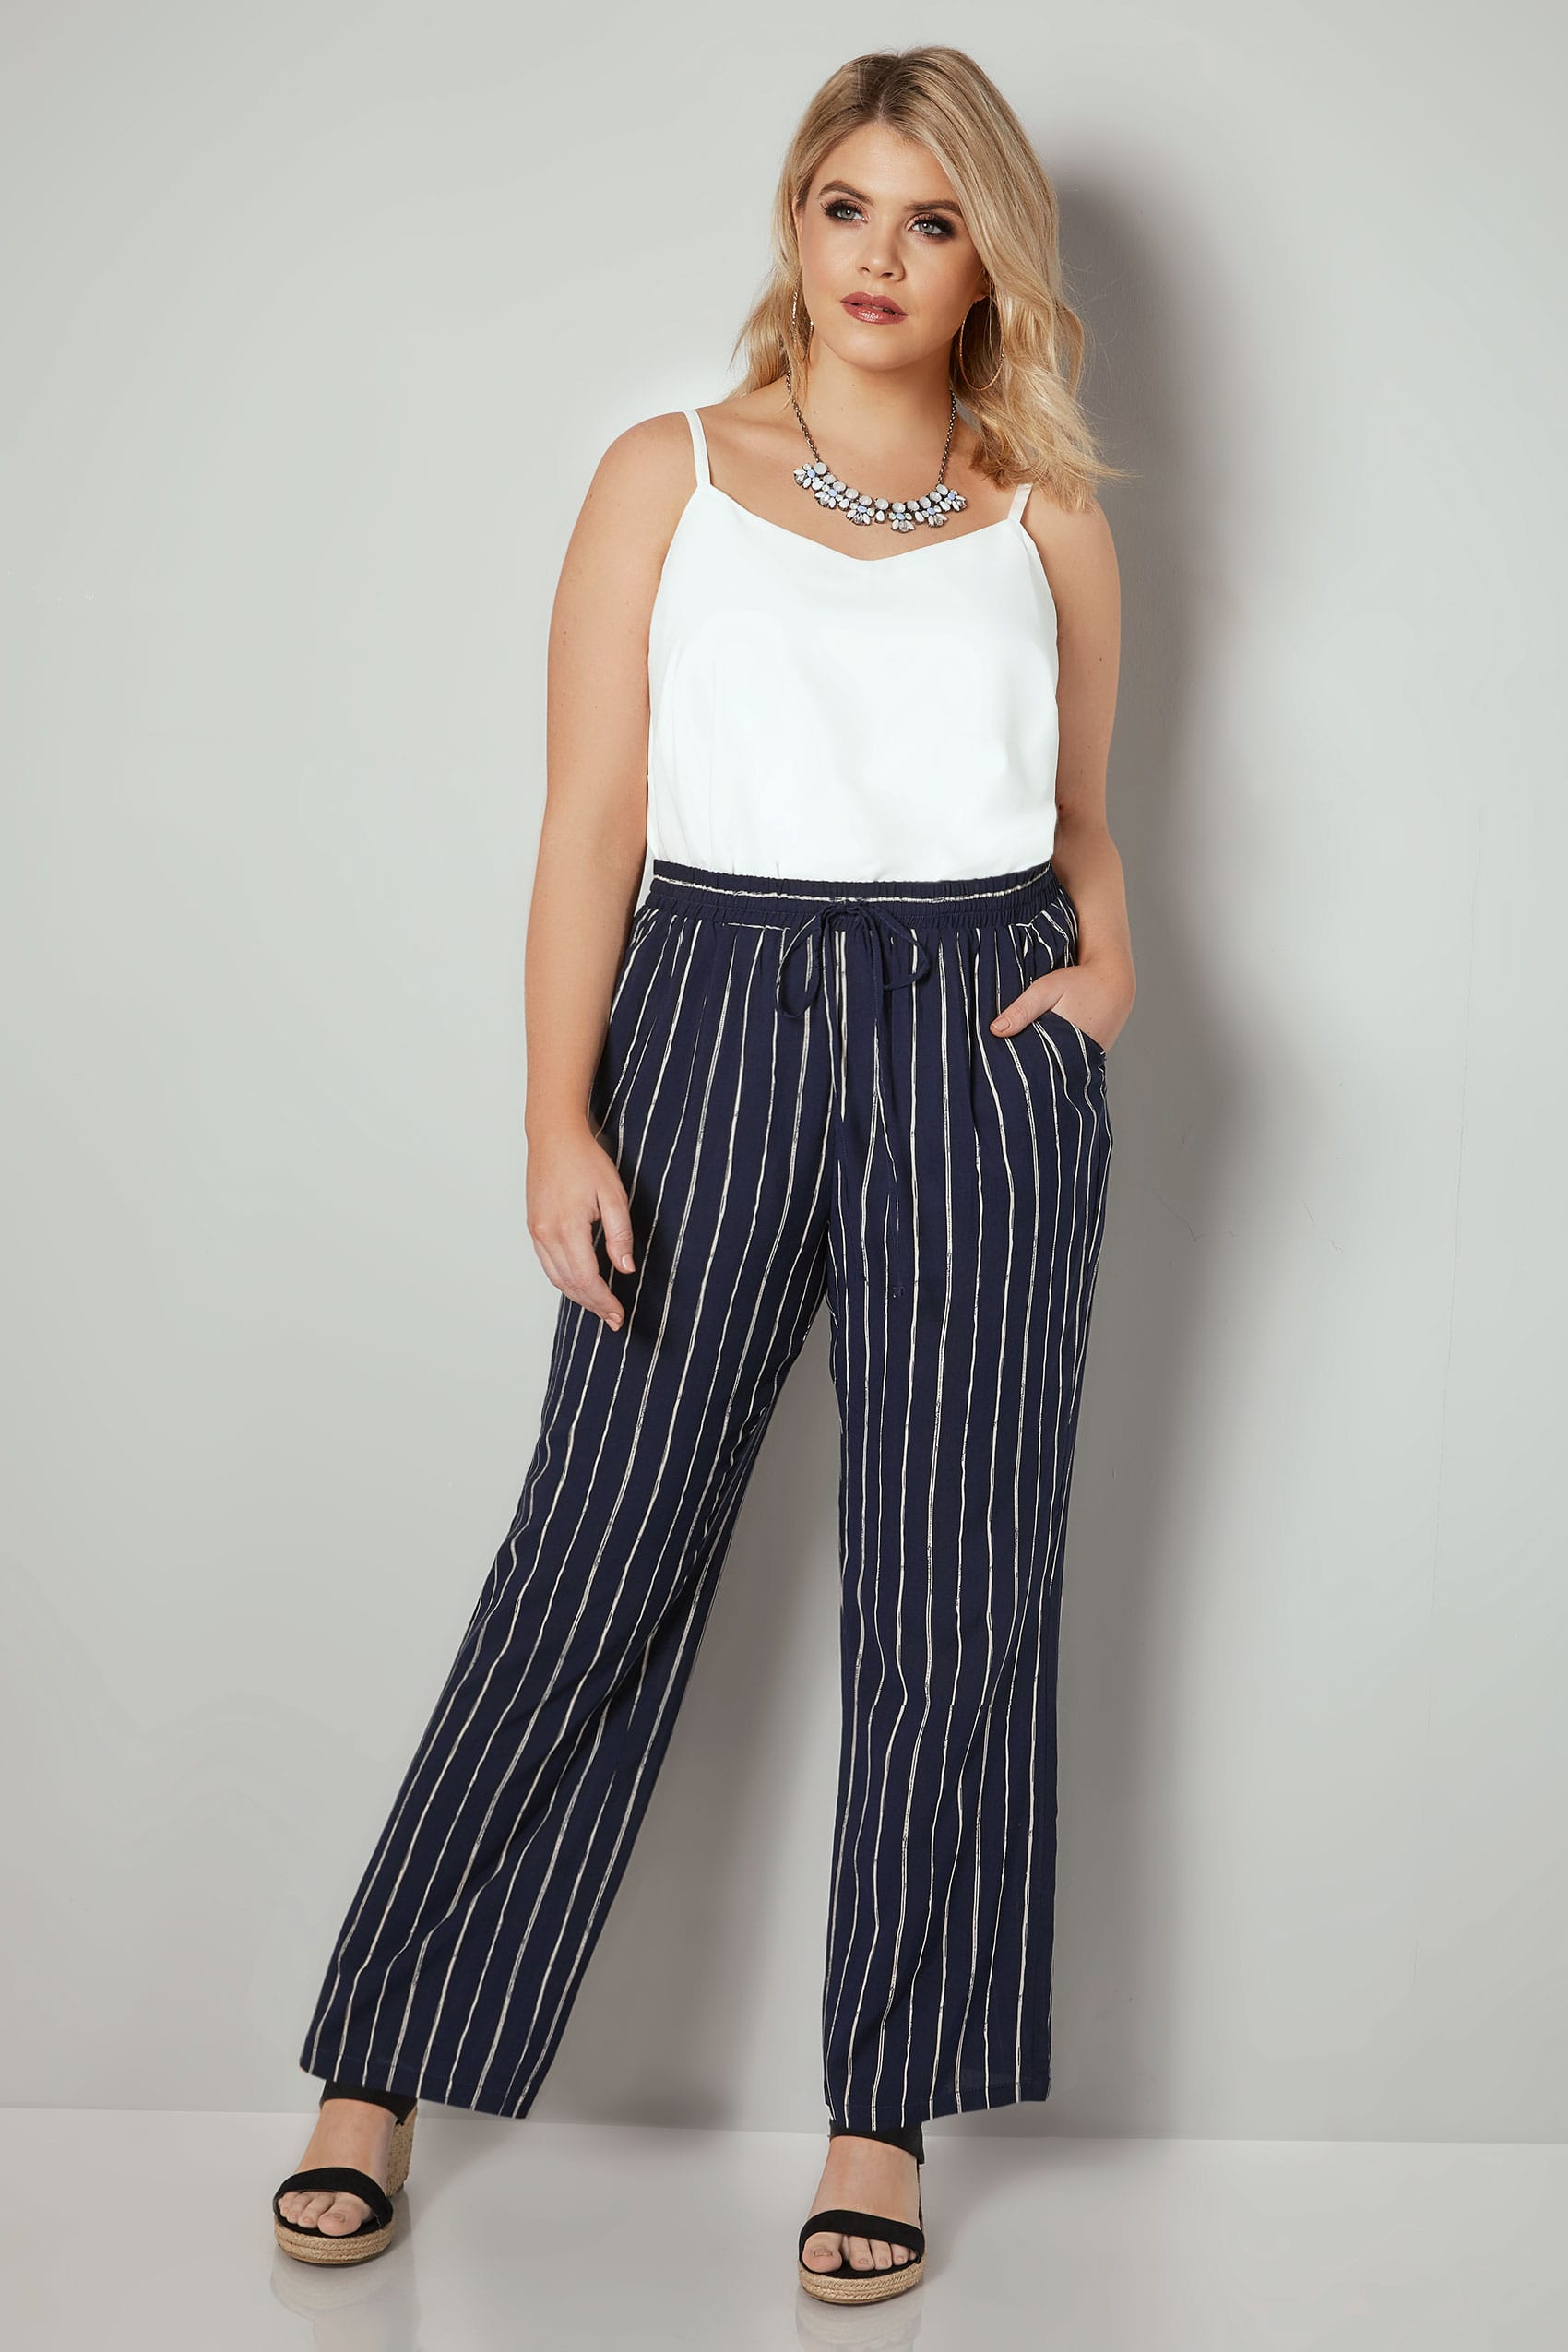 Navy White Pinstripe Trousers Plus Size 16 To 36 Tendencies Chinos Short 32